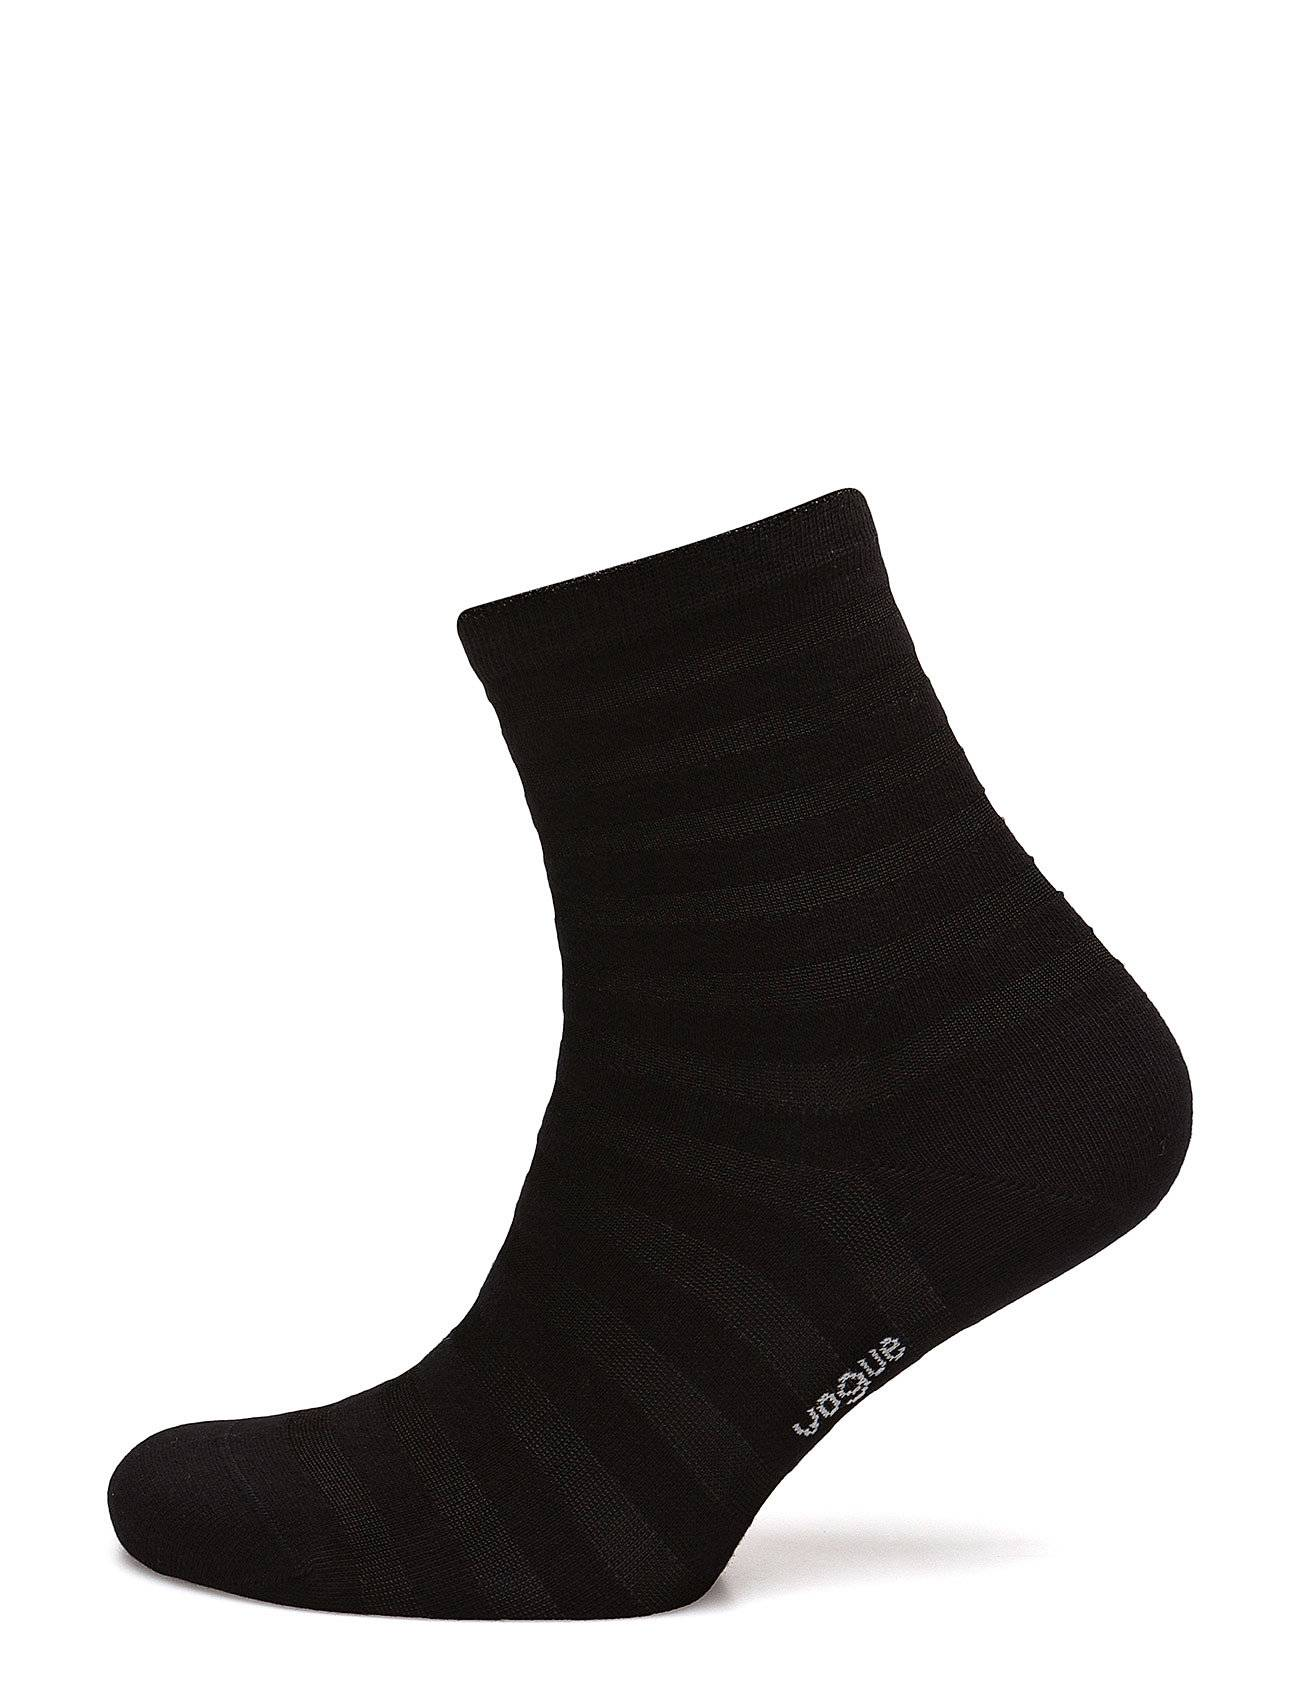 Vogue Ladies Anklesock, Cotton Shiny Stripe